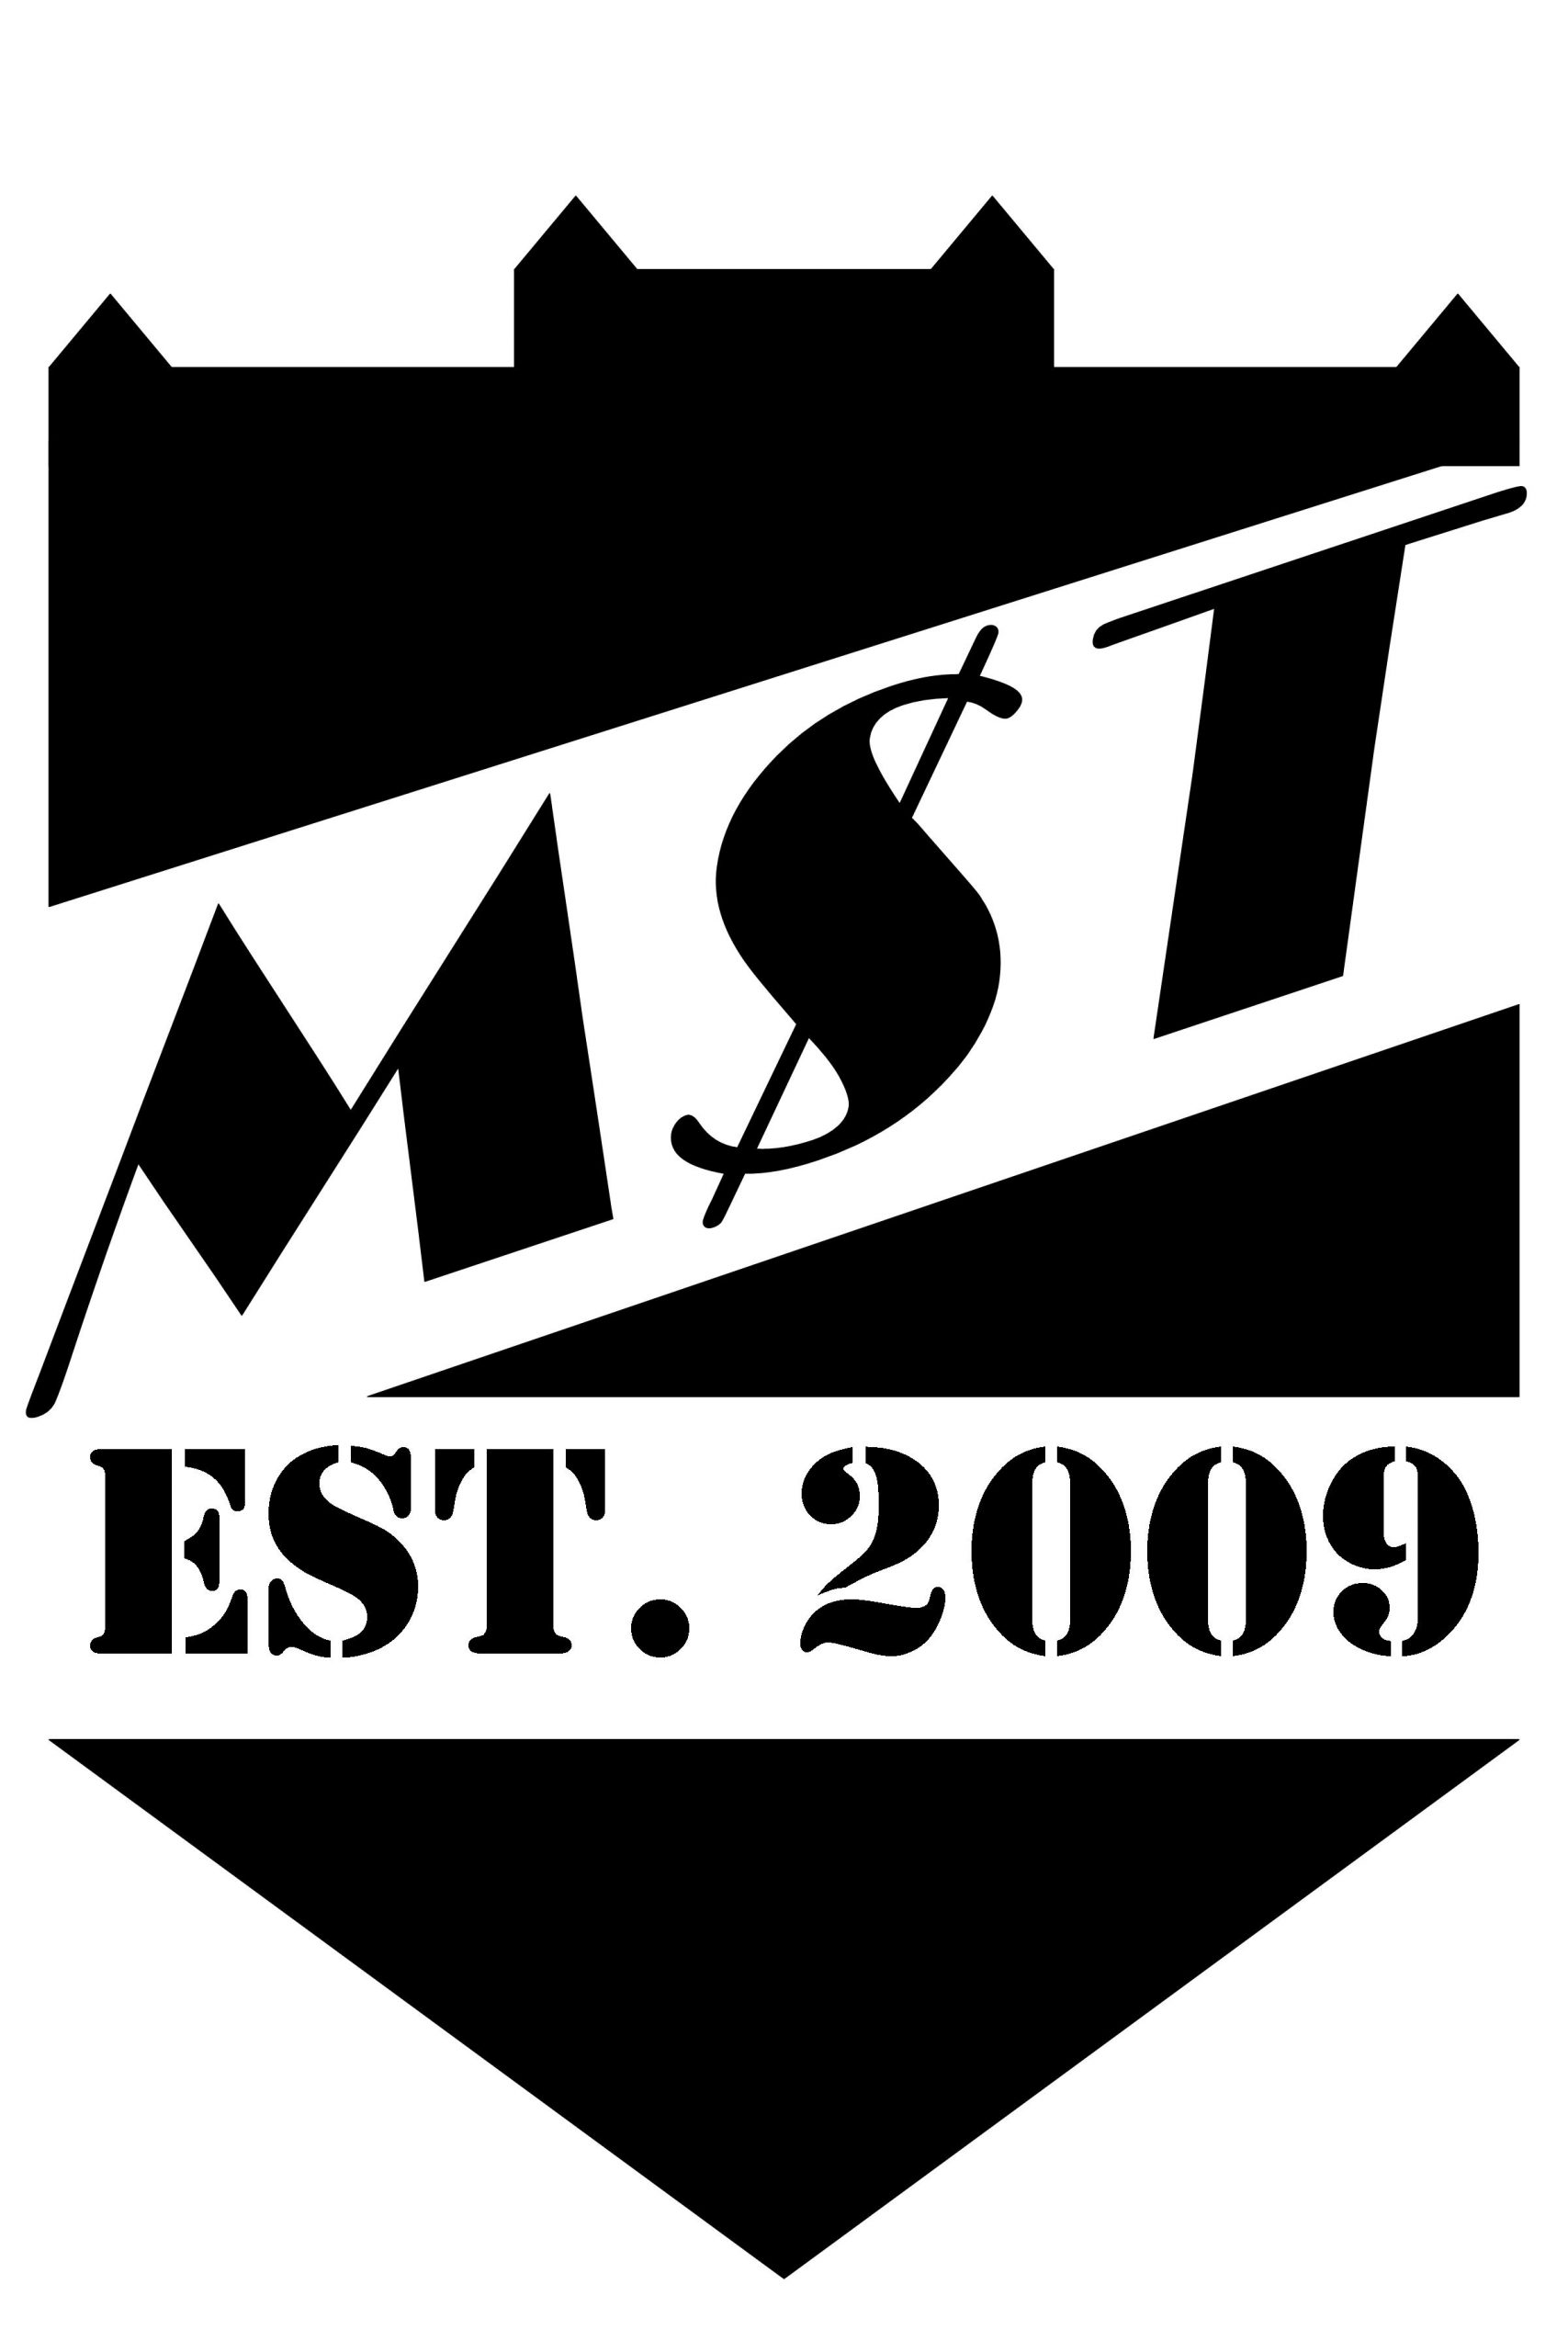 MST Pub logo - Tiffin, Ohio